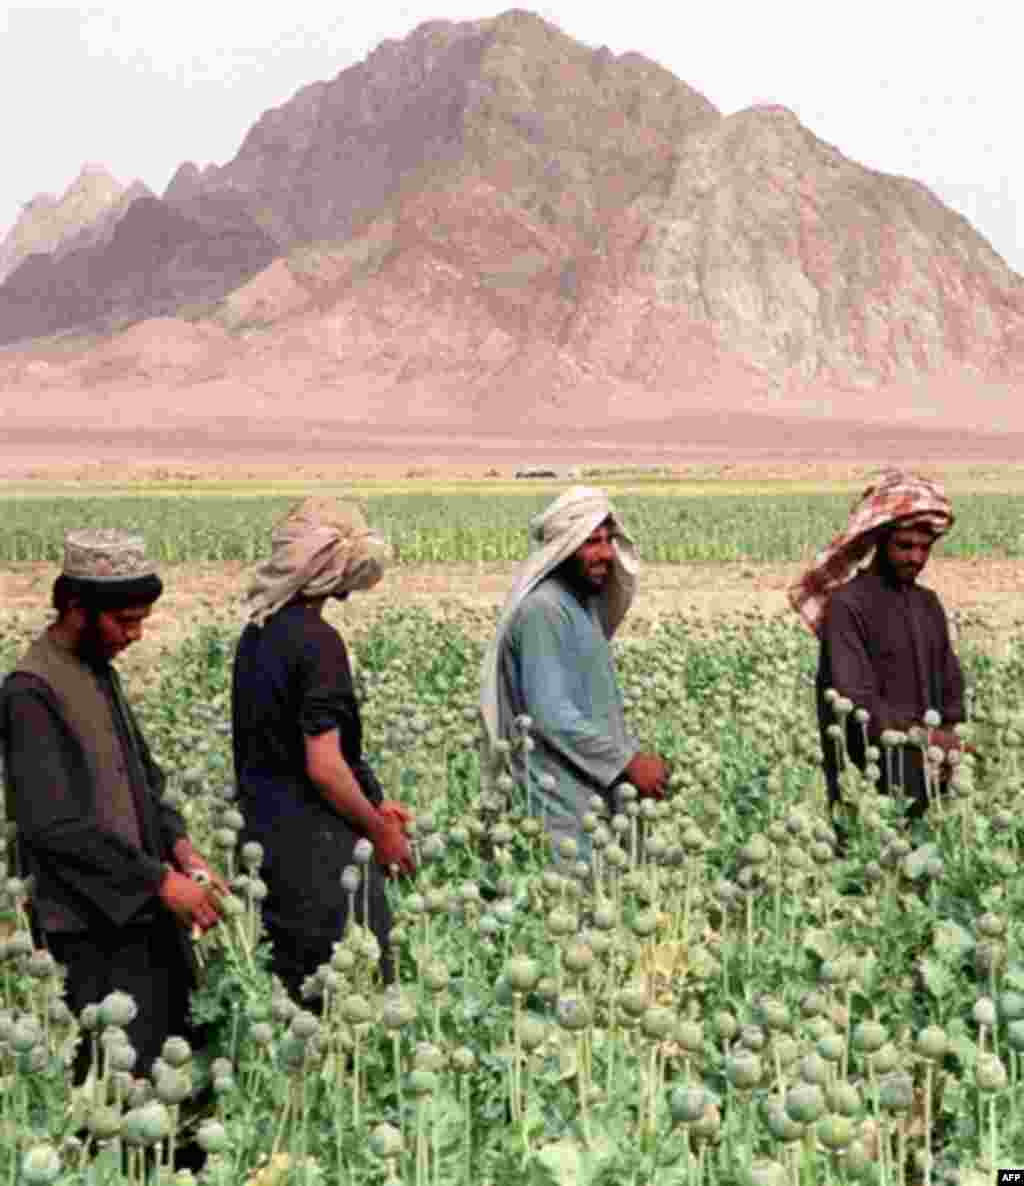 Afghans harvesting opium poppies in Kandahar Province (AFP) - Warlords across the country are using drug money to build up their power. The government is trying to eradicate poppy production, but most of the drugs come the south where the government's control is most nominal. Five years later, there is a danger, the UN warns, that Afghanistan will become a narco-state. Heroin production is feeding corruption, instability, and a growing number of Afghan addicts.